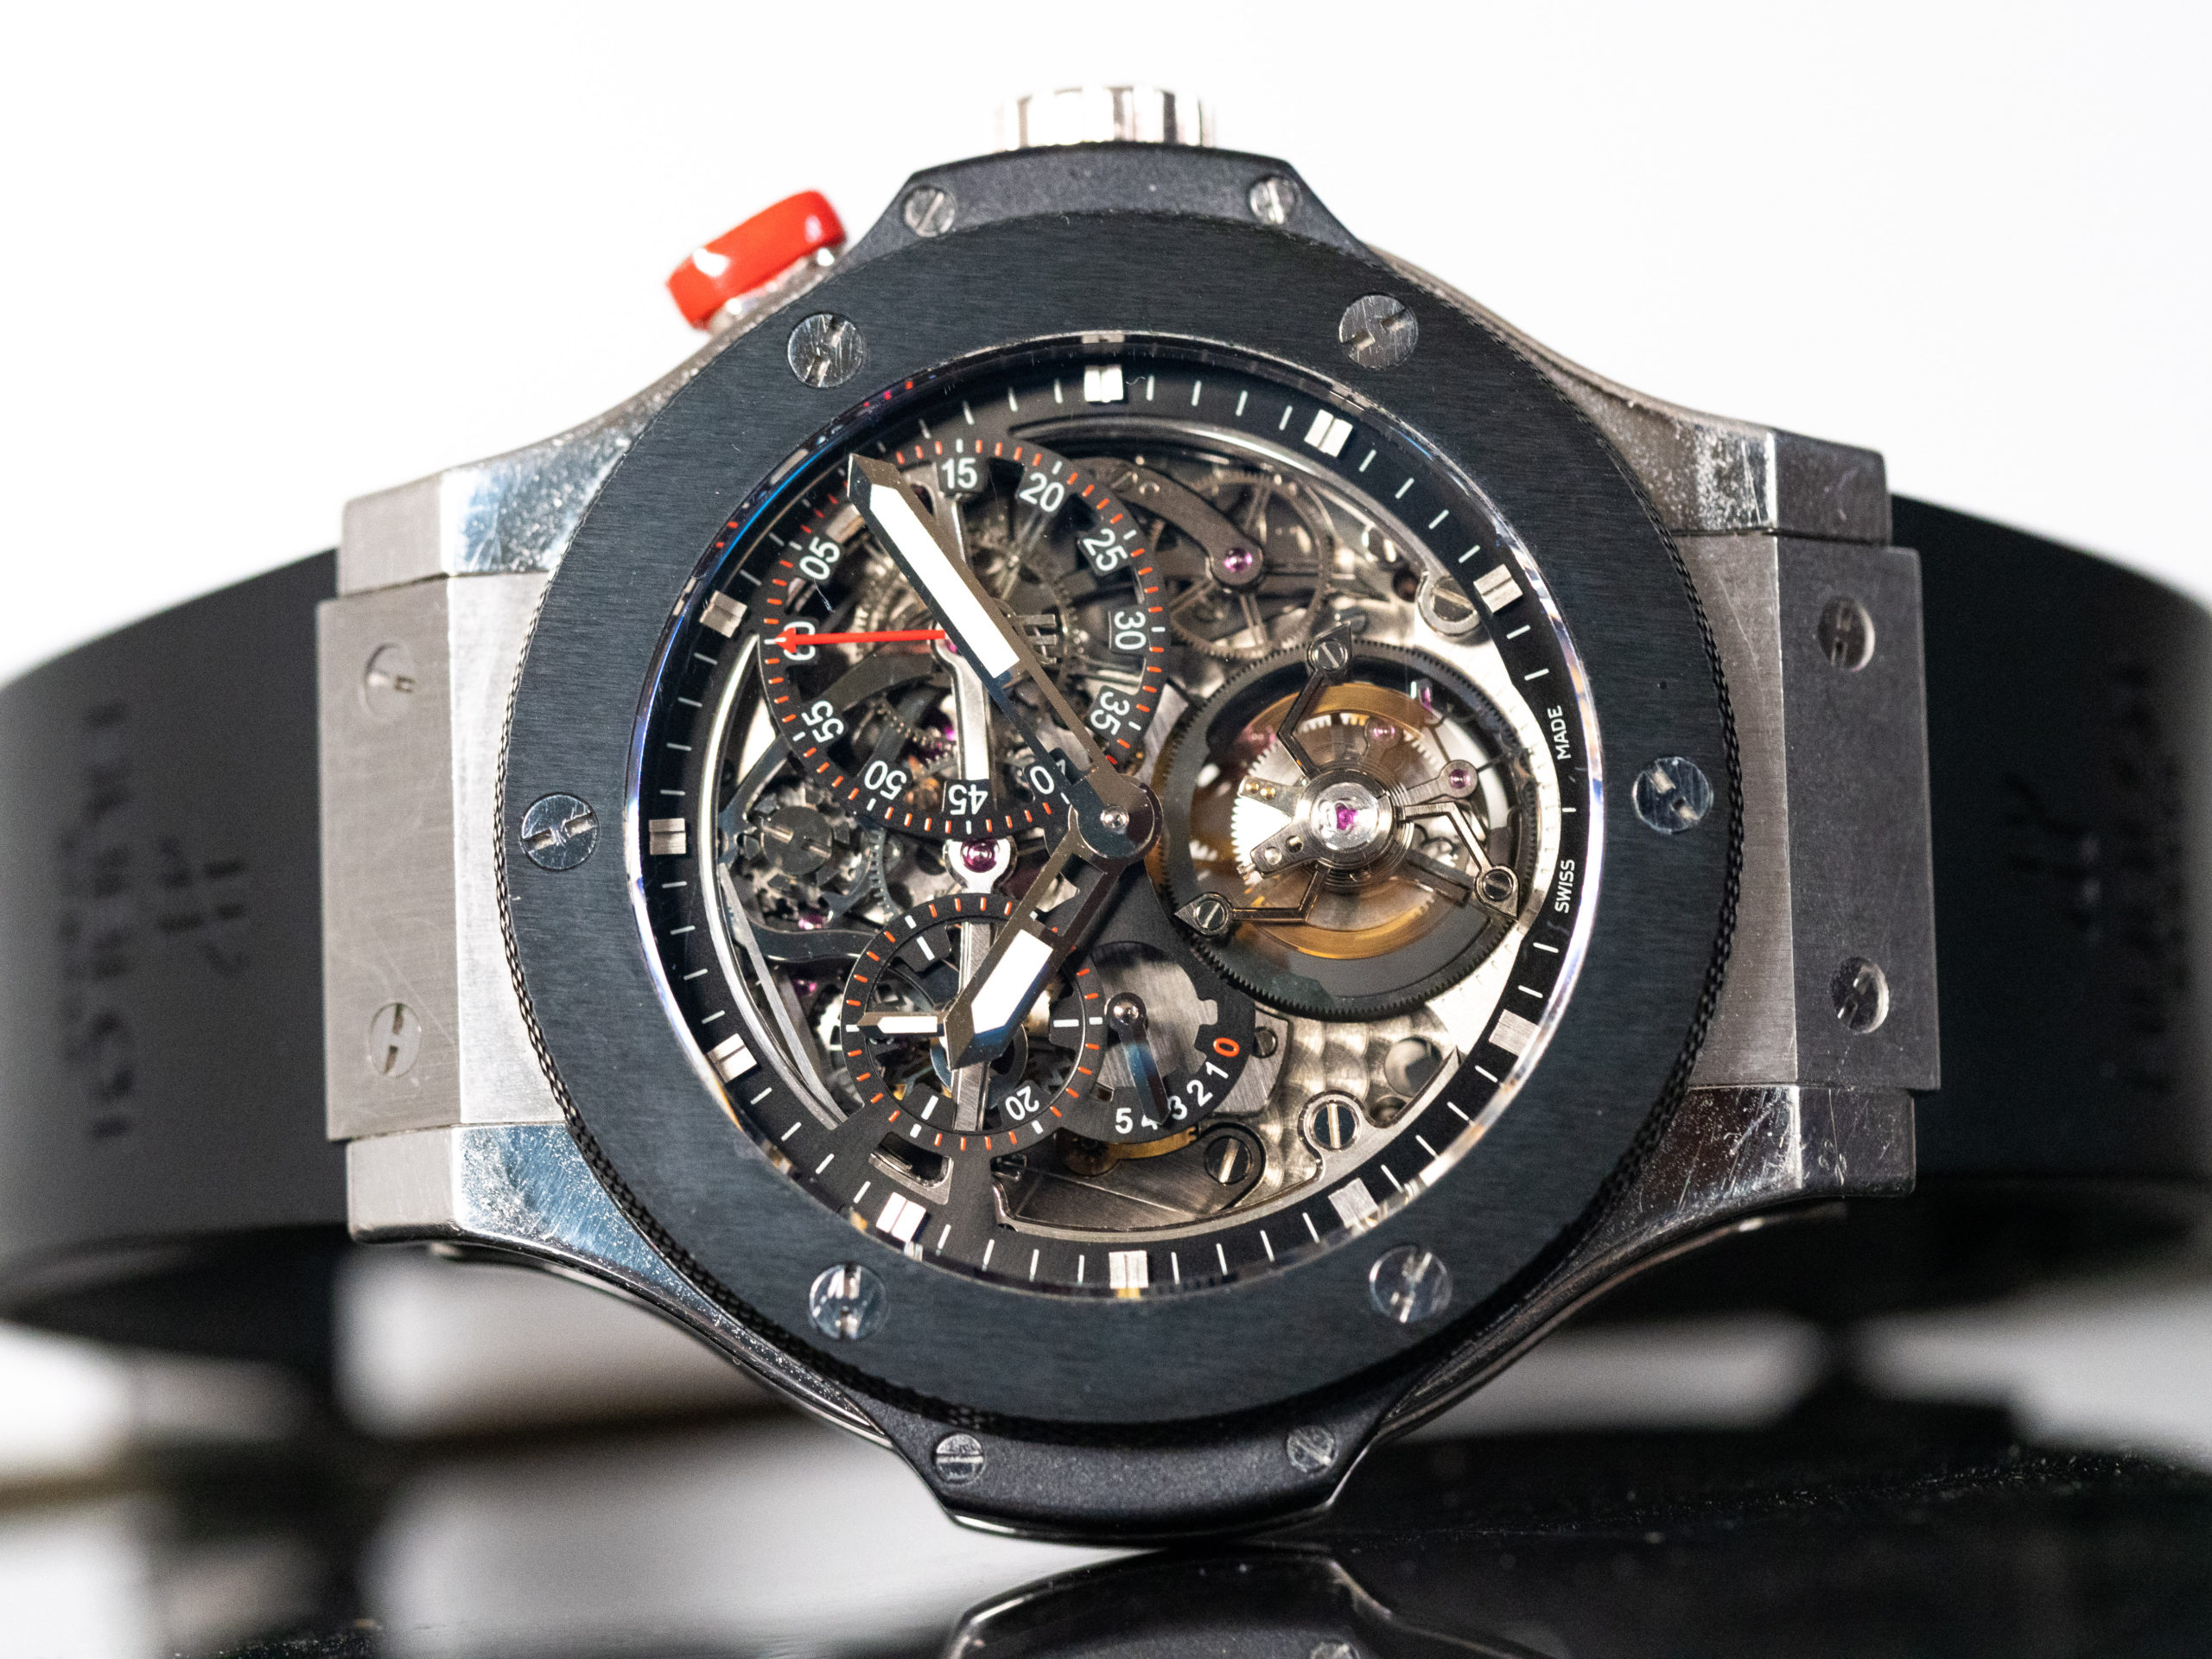 Big Bang Tourbillon Monopusher Chrono